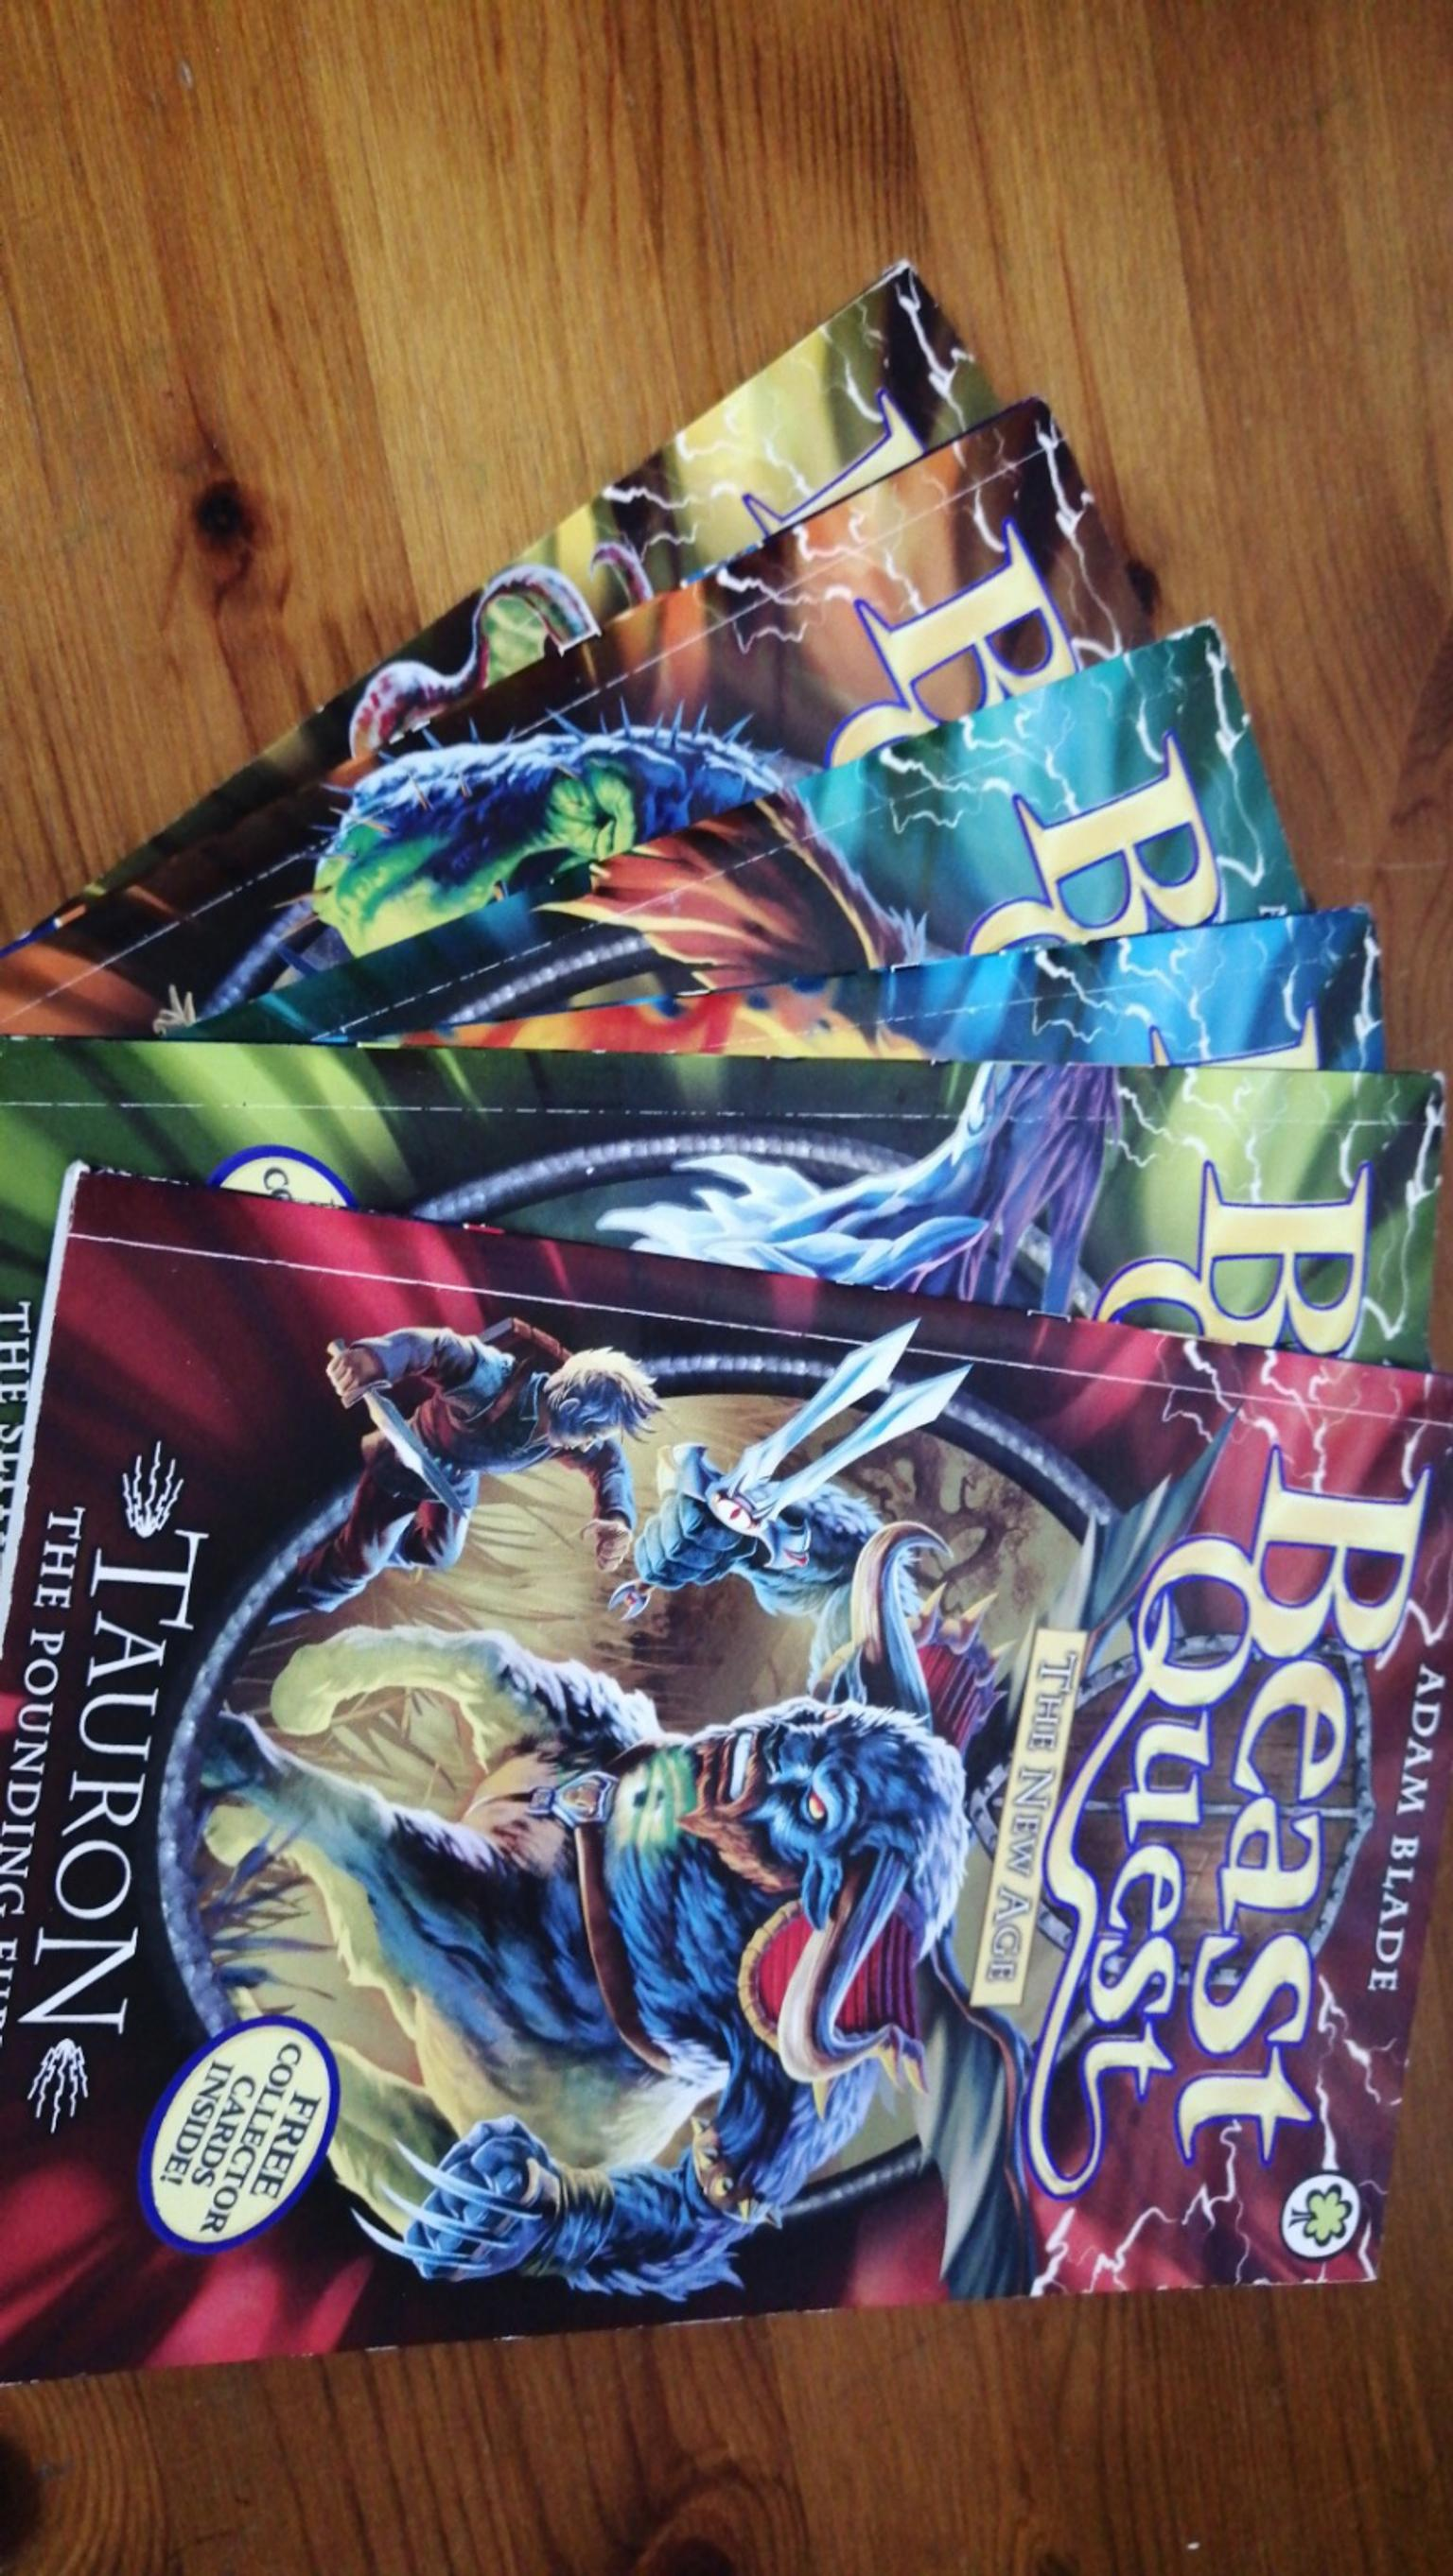 beast quest books series 11 in sw20 london for £700 for